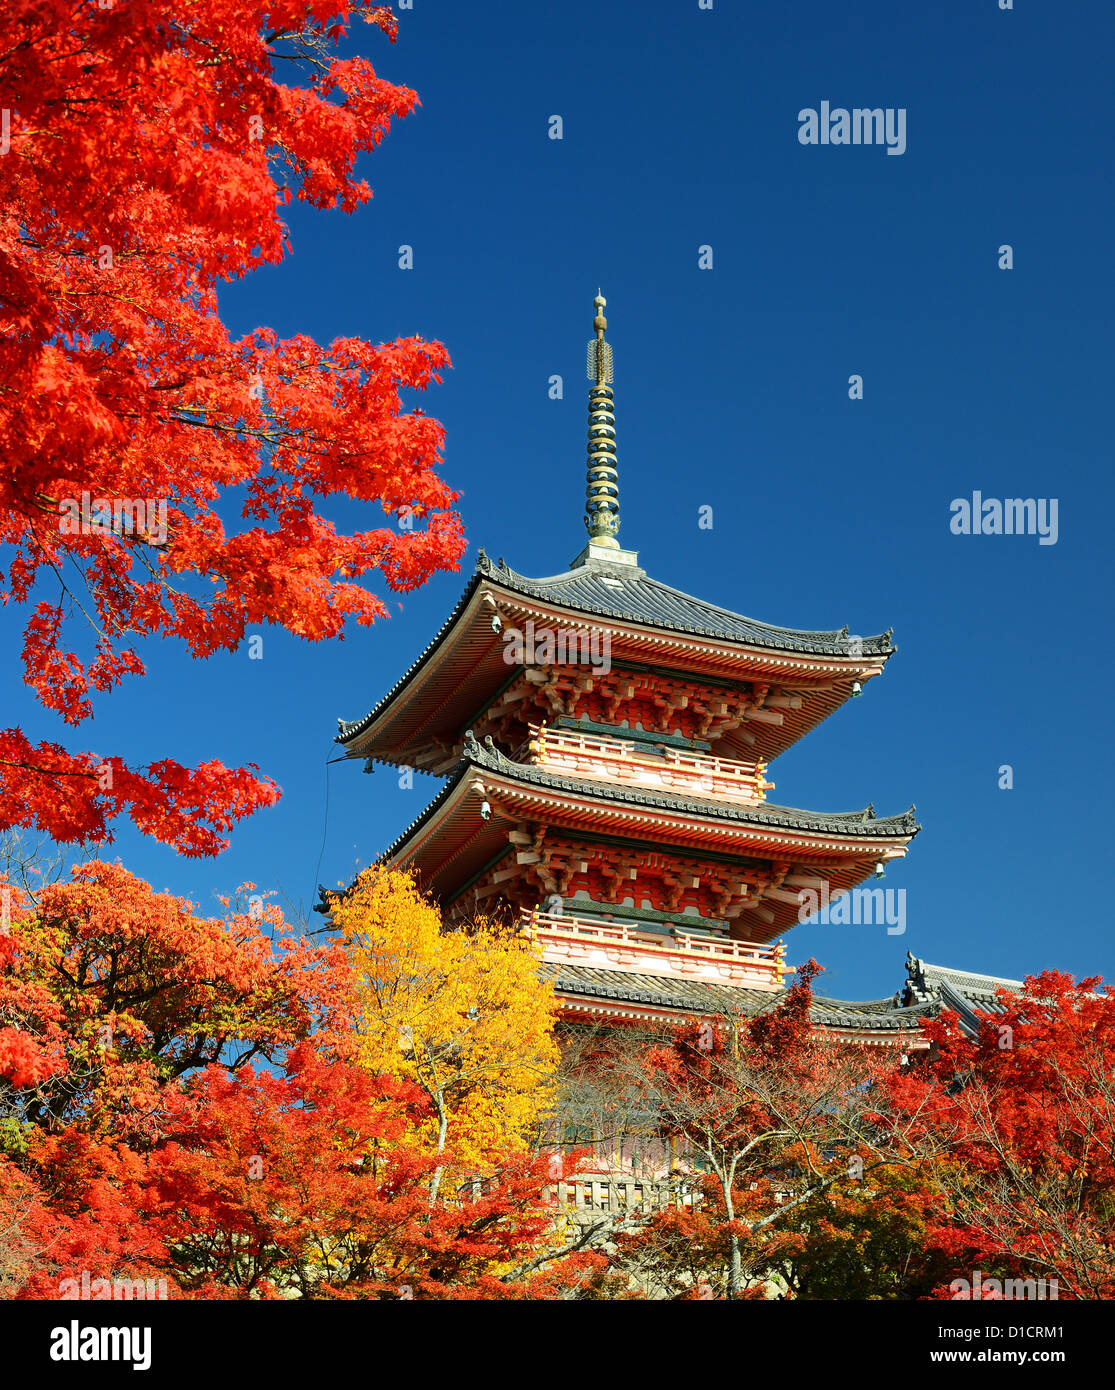 The pagoda of Kiyomizu-dera in Kyoto, Japan. - Stock Image